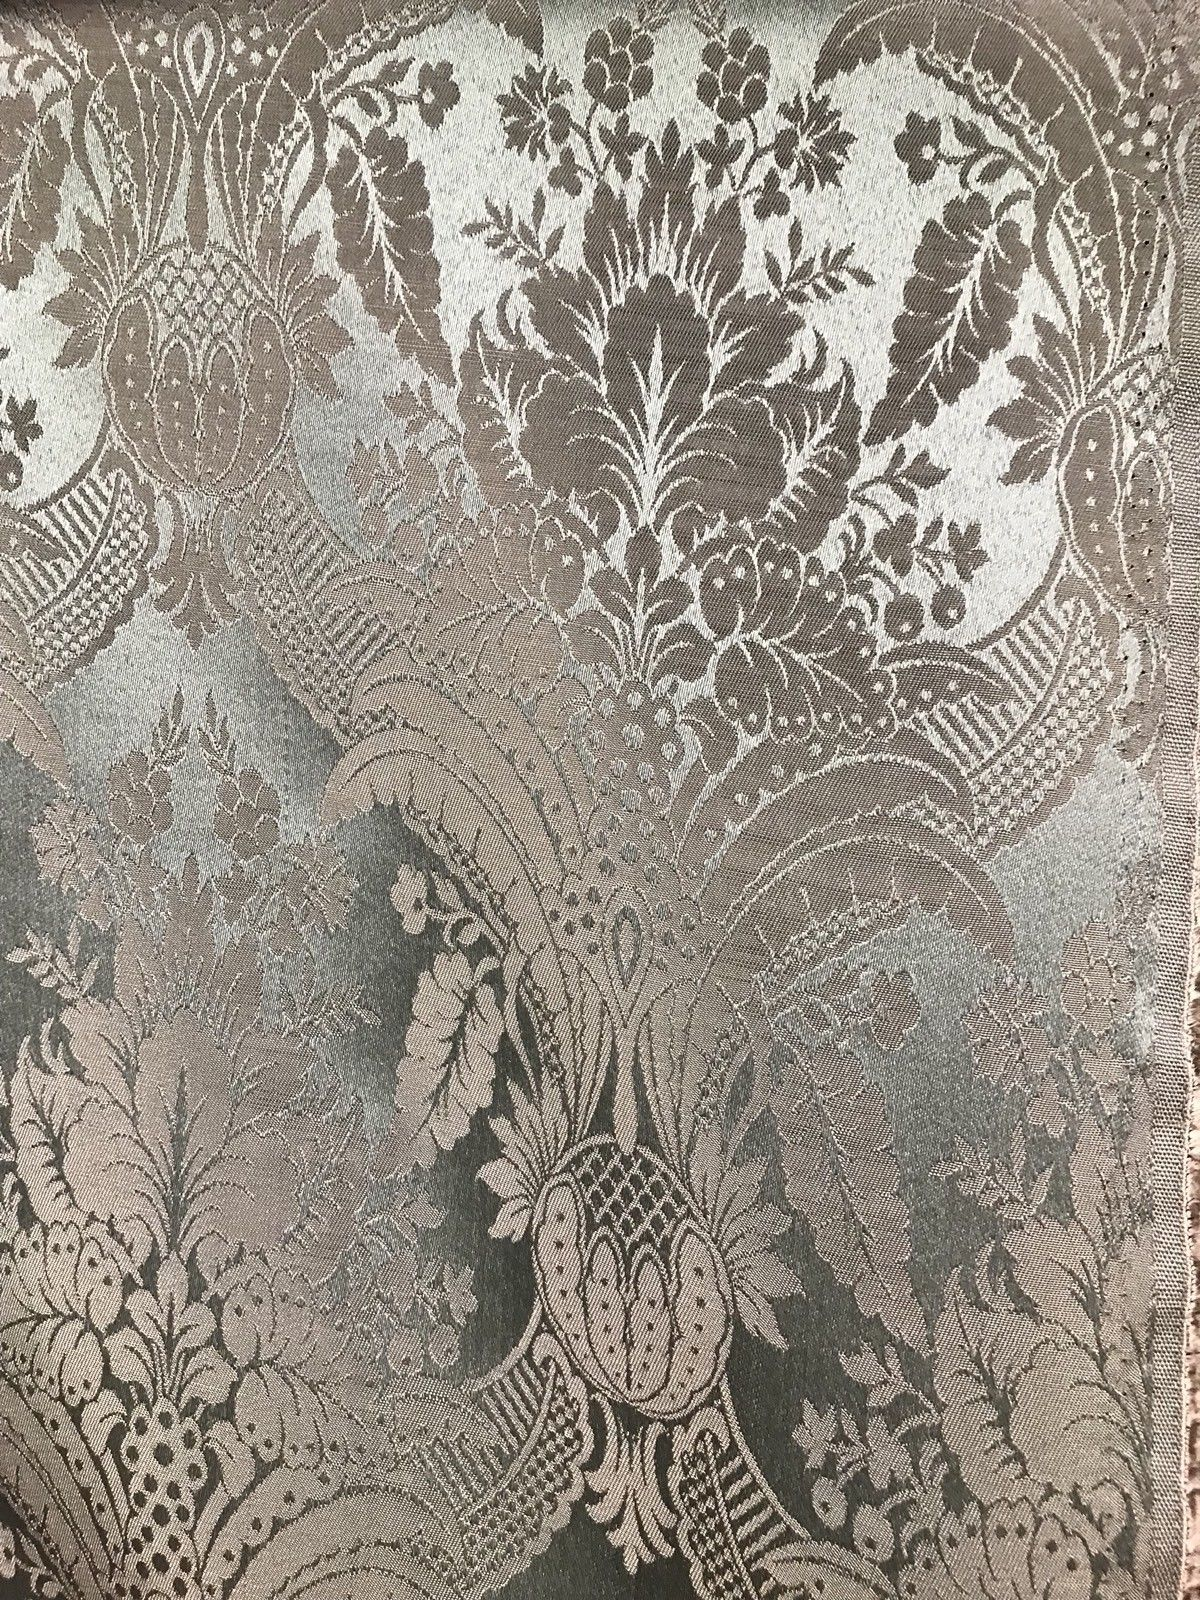 NEW! SALE! Designer Damask Satin Fabric- Antique Green - Upholstery Brocade - Fancy Styles Fabric Boutique